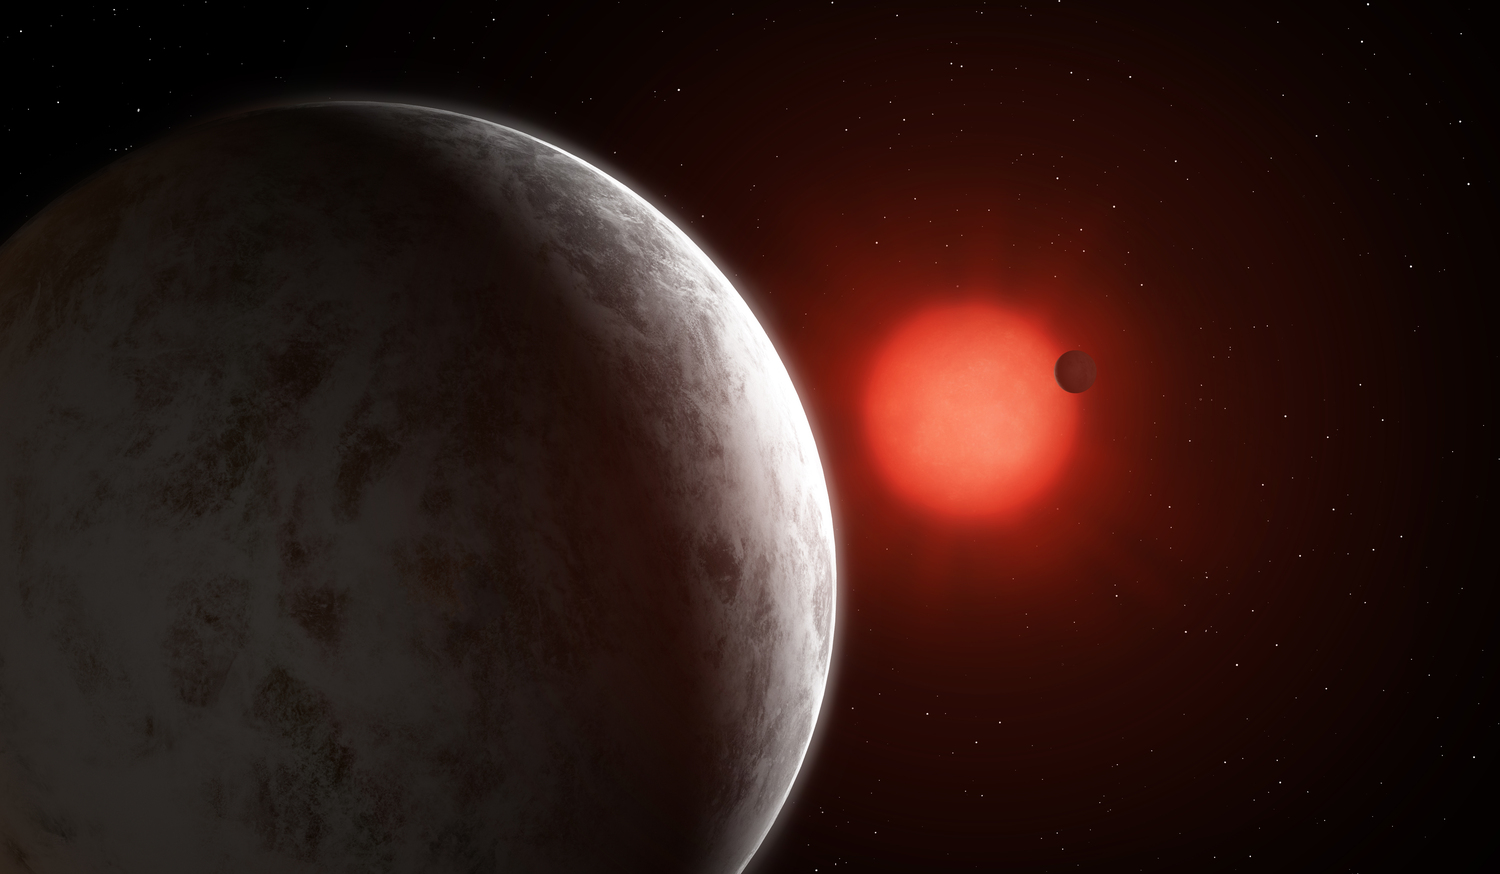 Artist's impression of the multiplanetary system of newly discovered super-Earths orbiting nearby red dwarf Gliese 887